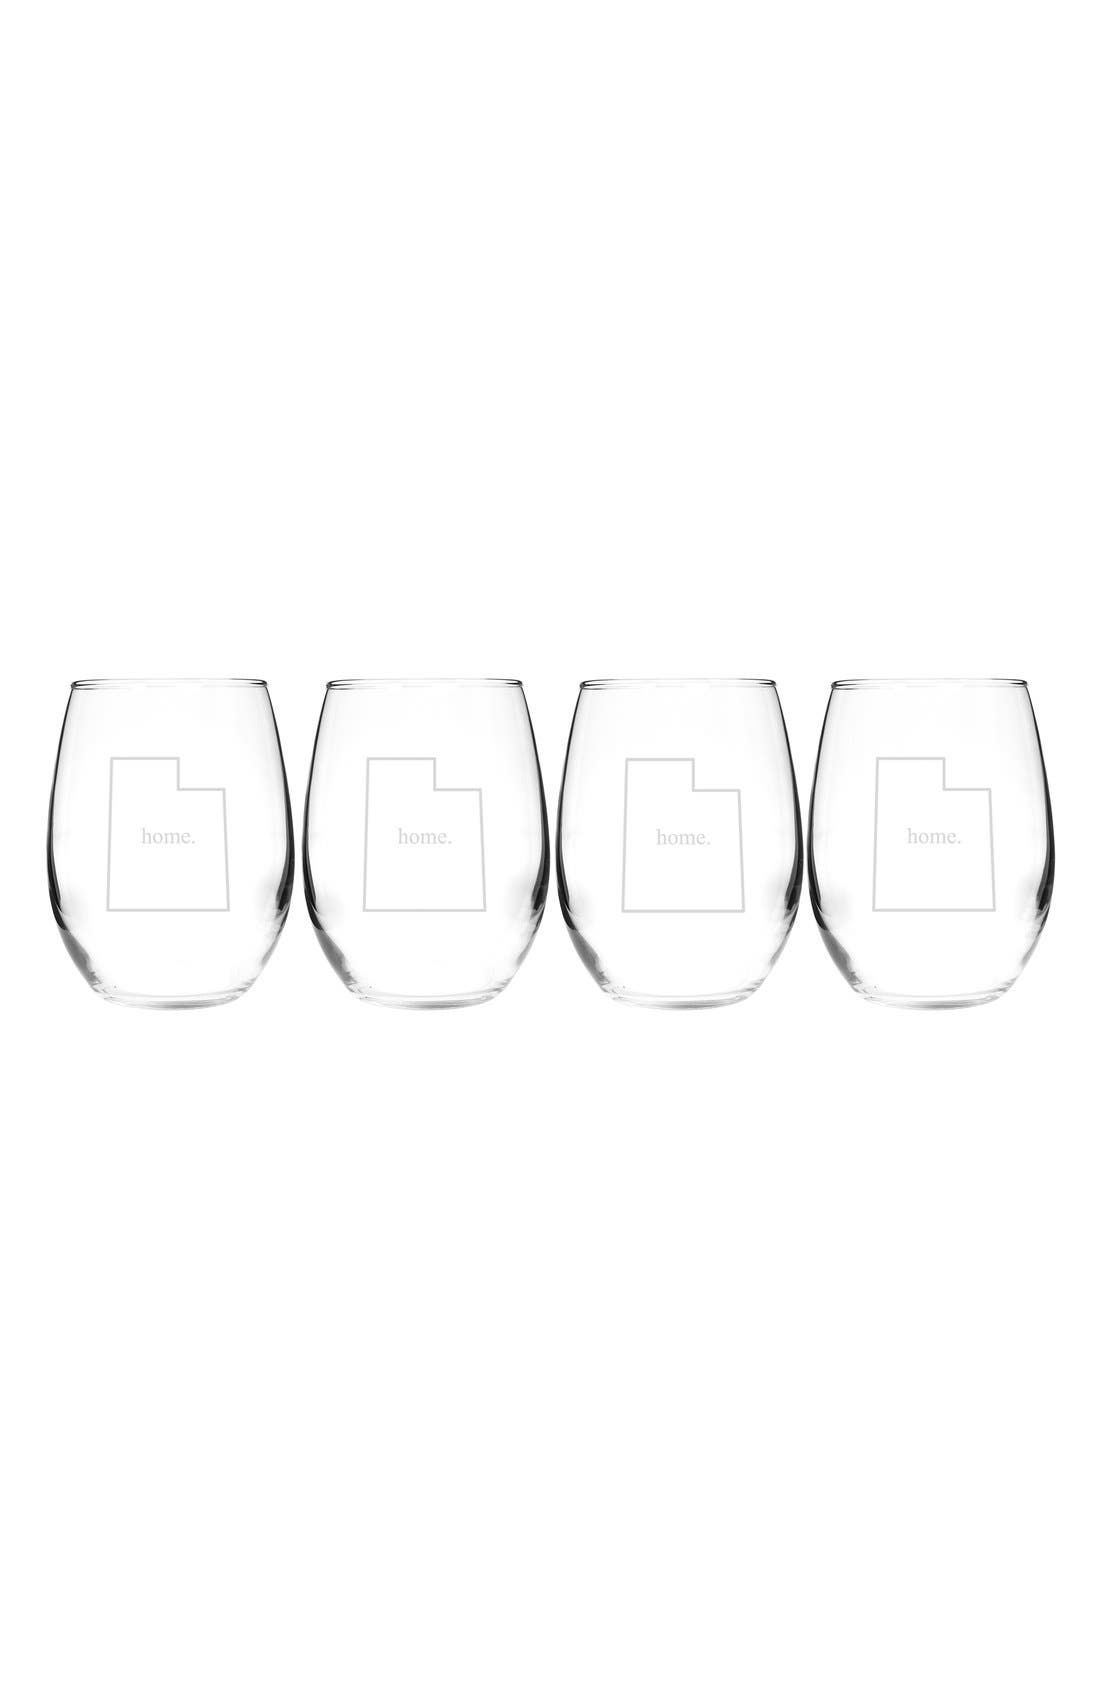 Home State Set of 4 Stemless Wine Glasses,                             Main thumbnail 1, color,                             143